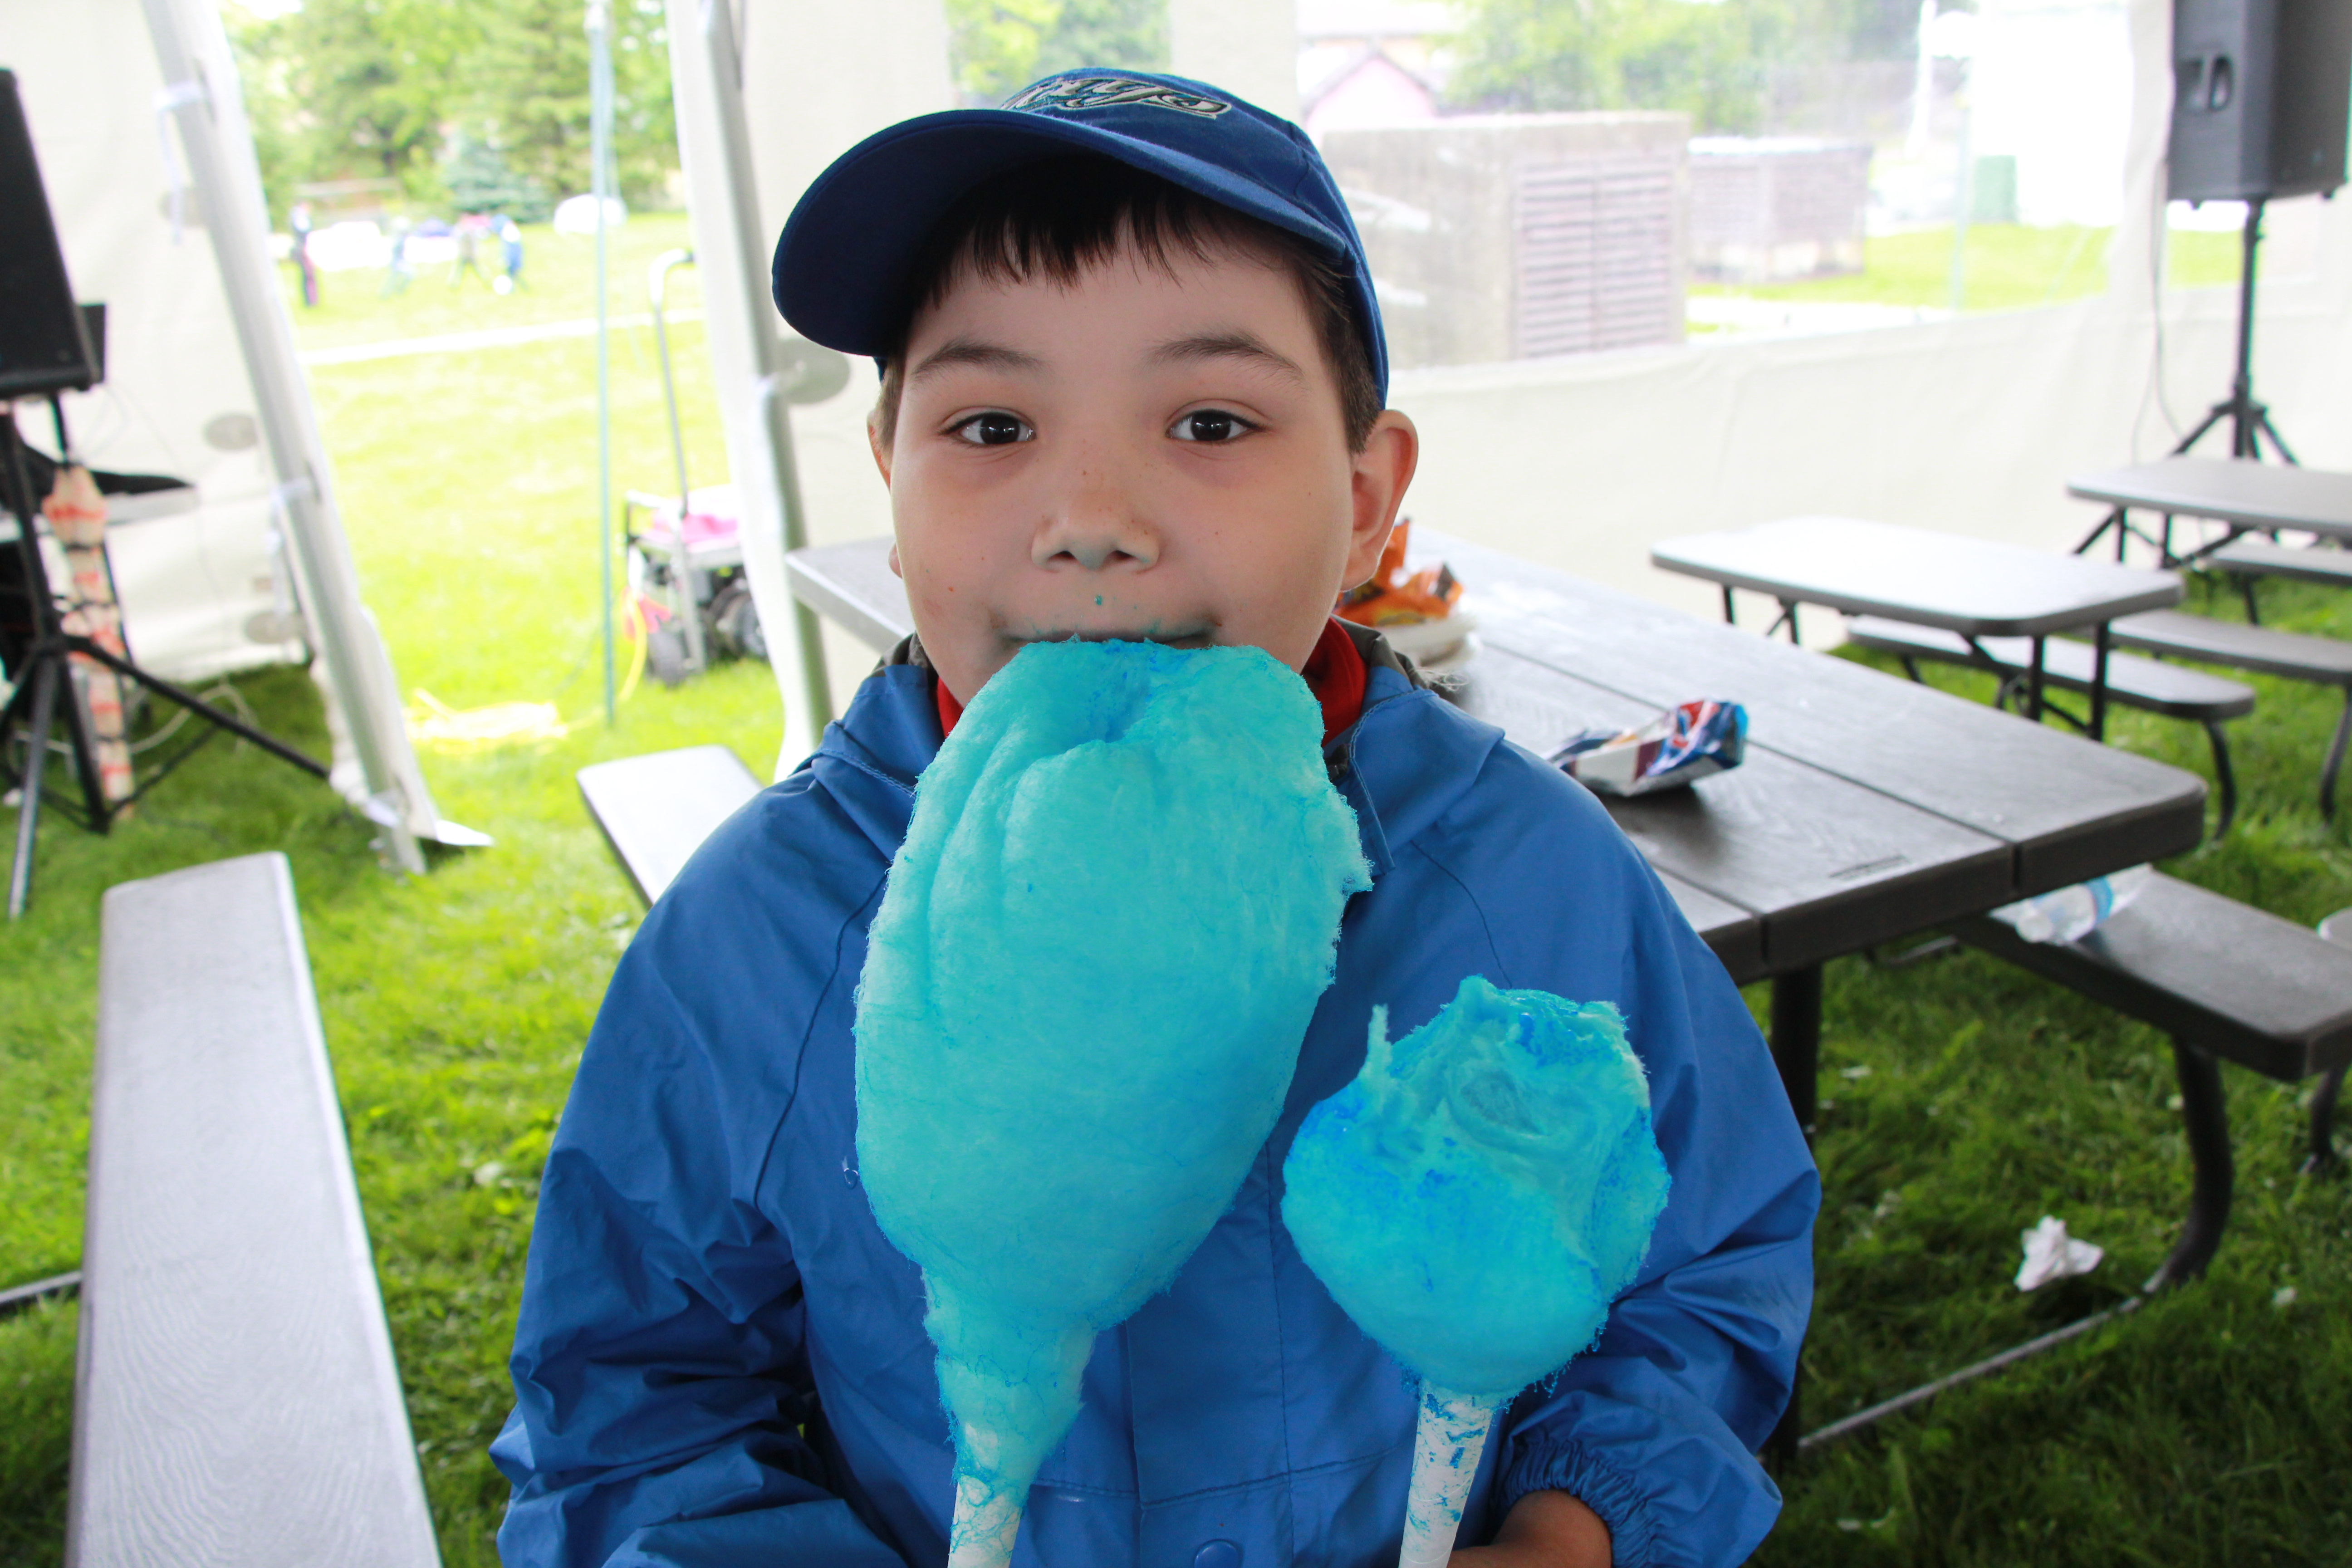 Photo: Matthew enjoying his cotton candy in a dry spot under the tent.